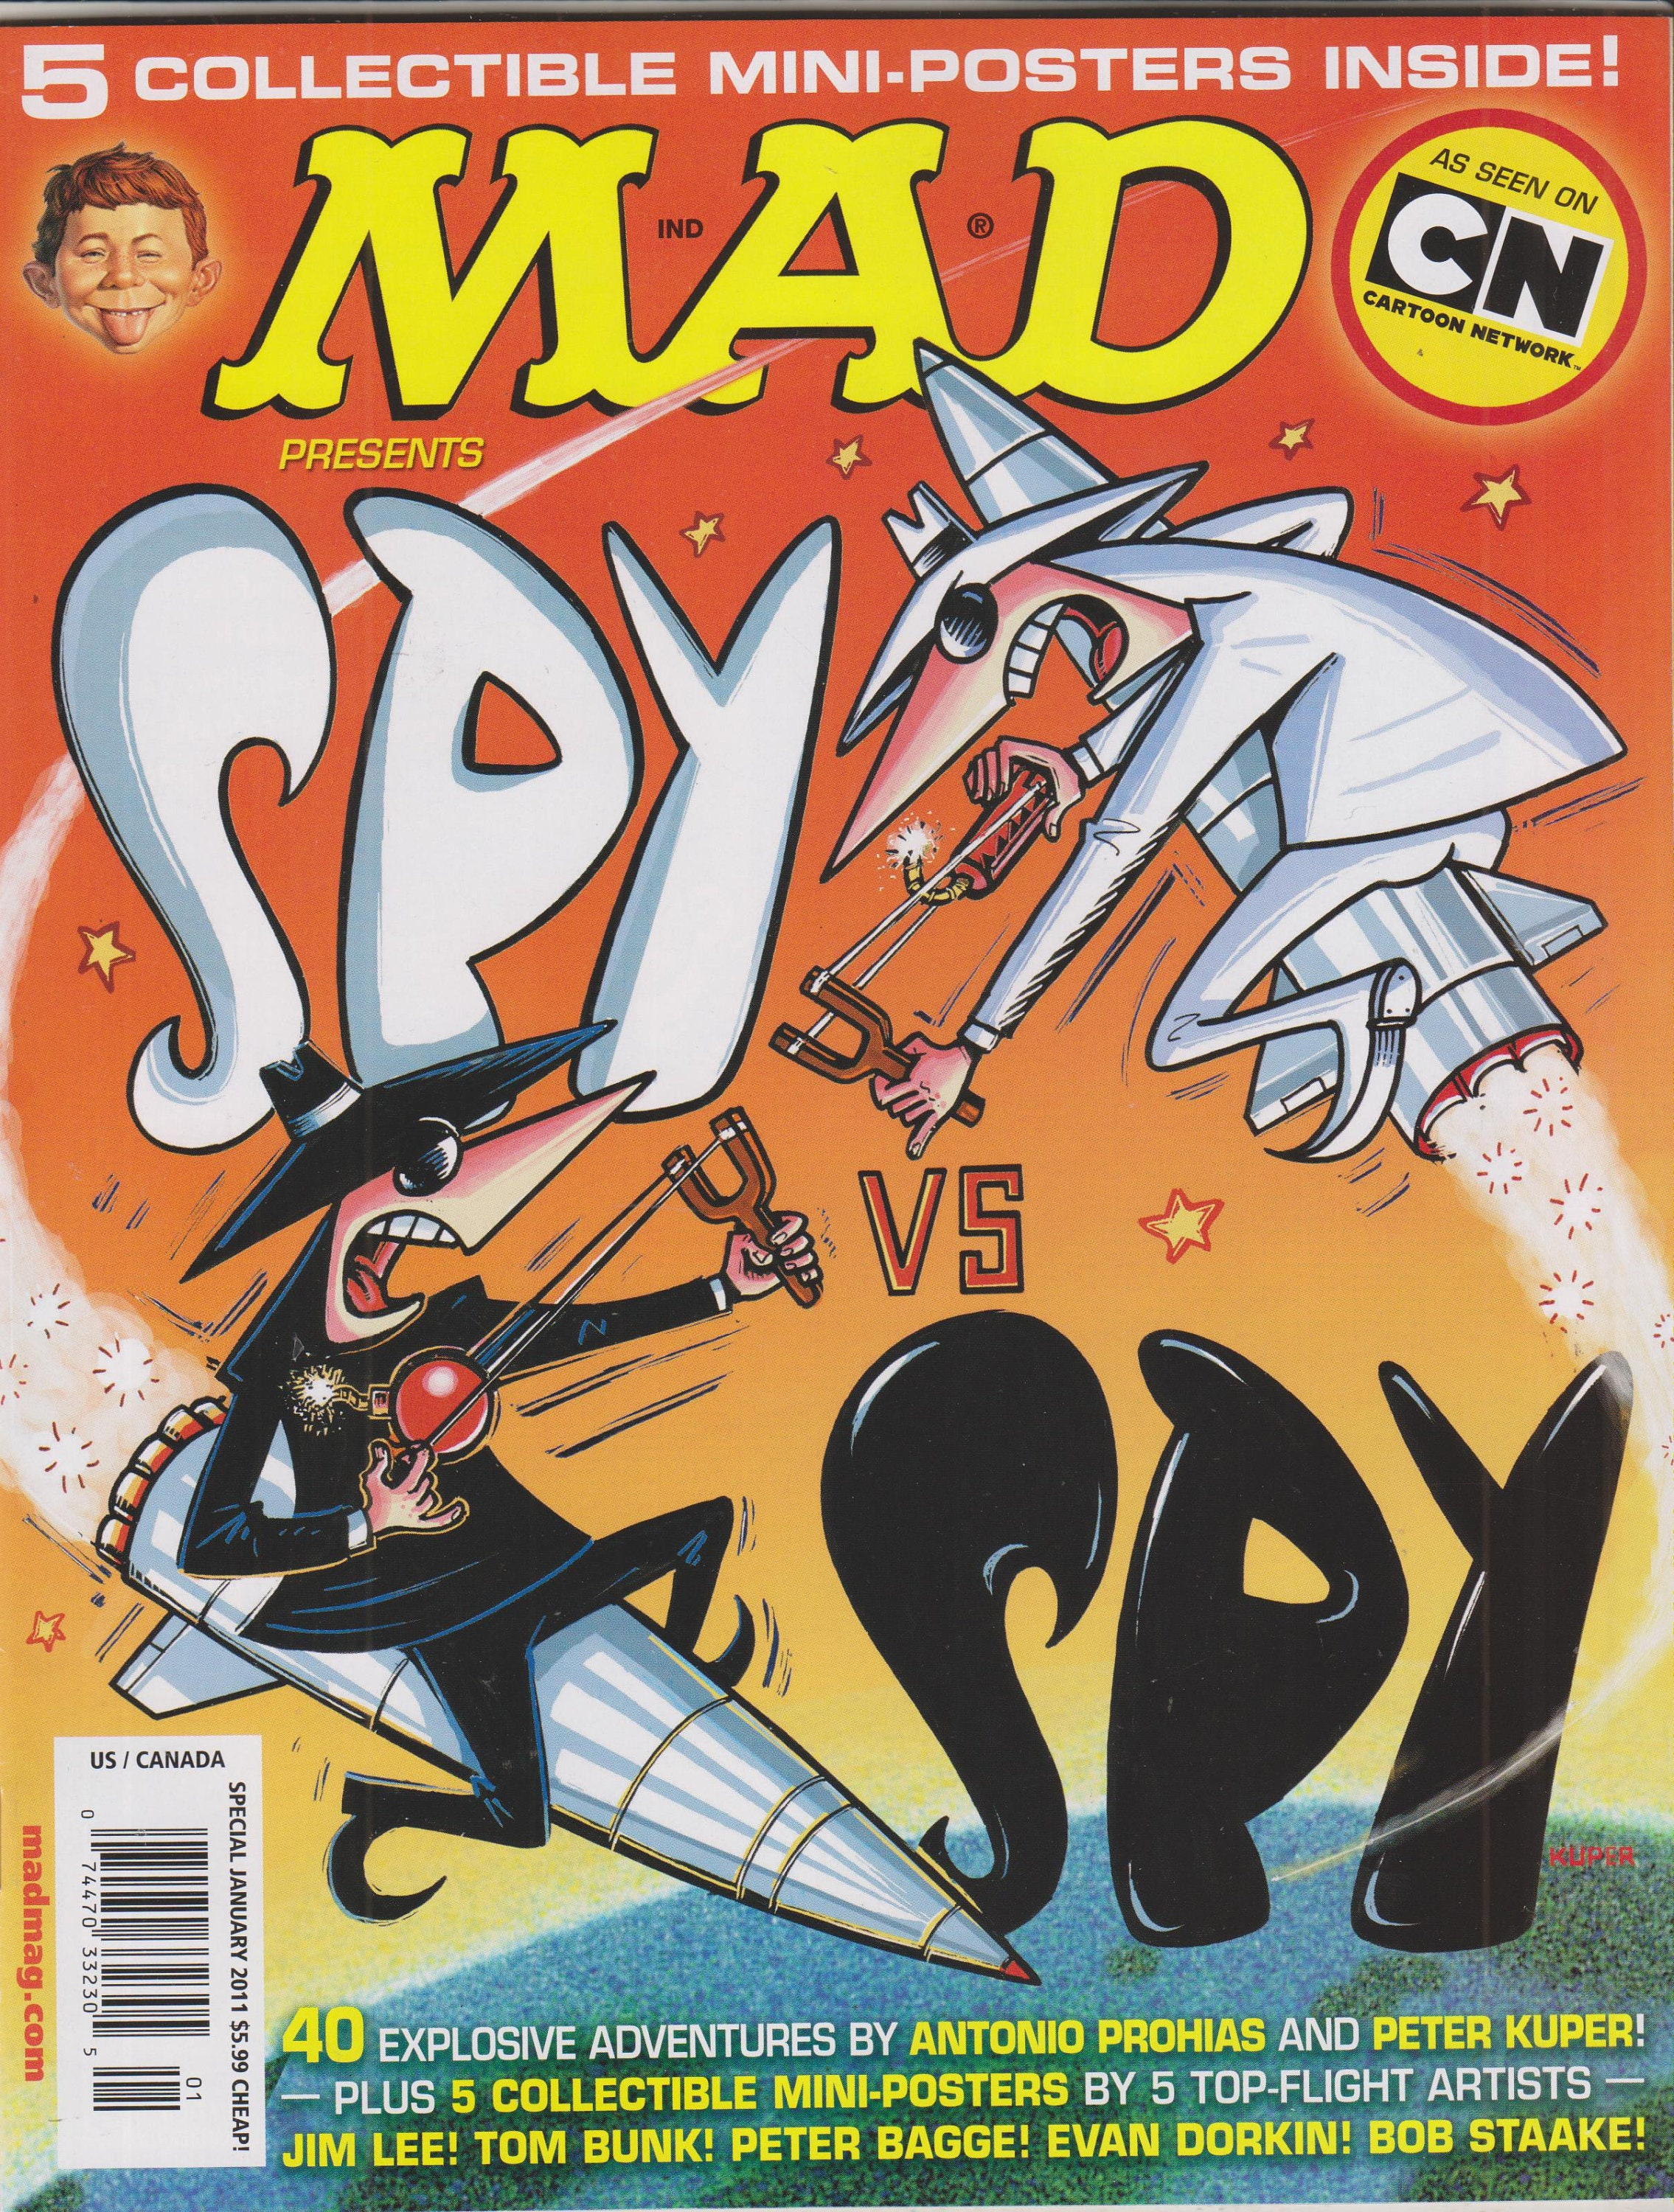 Mad Magazine Spy vs Spy Special Edition January 2011 includes posters New